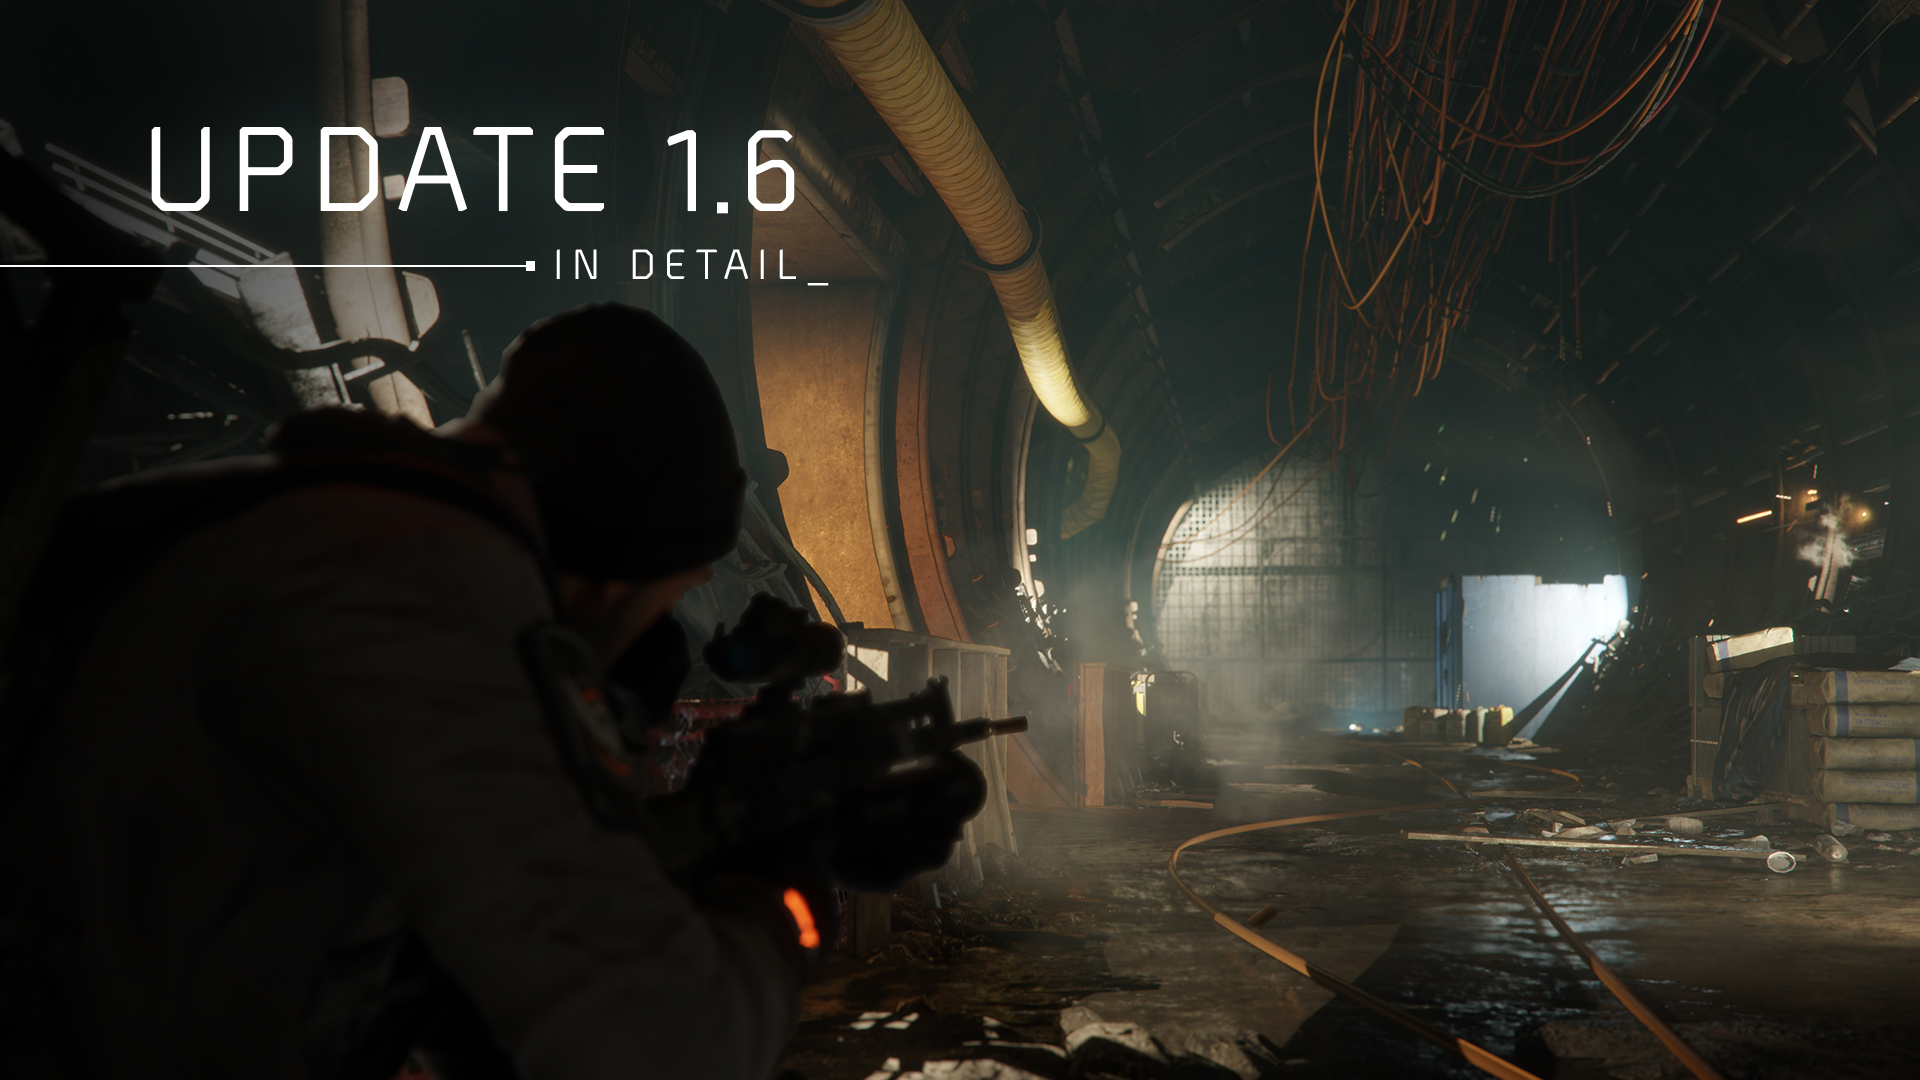 https://ubistatic9-a.akamaihd.net/resource/en-US/game/tomclancy-thedivision/game/DevBlogHeader_1_6_282272.jpg